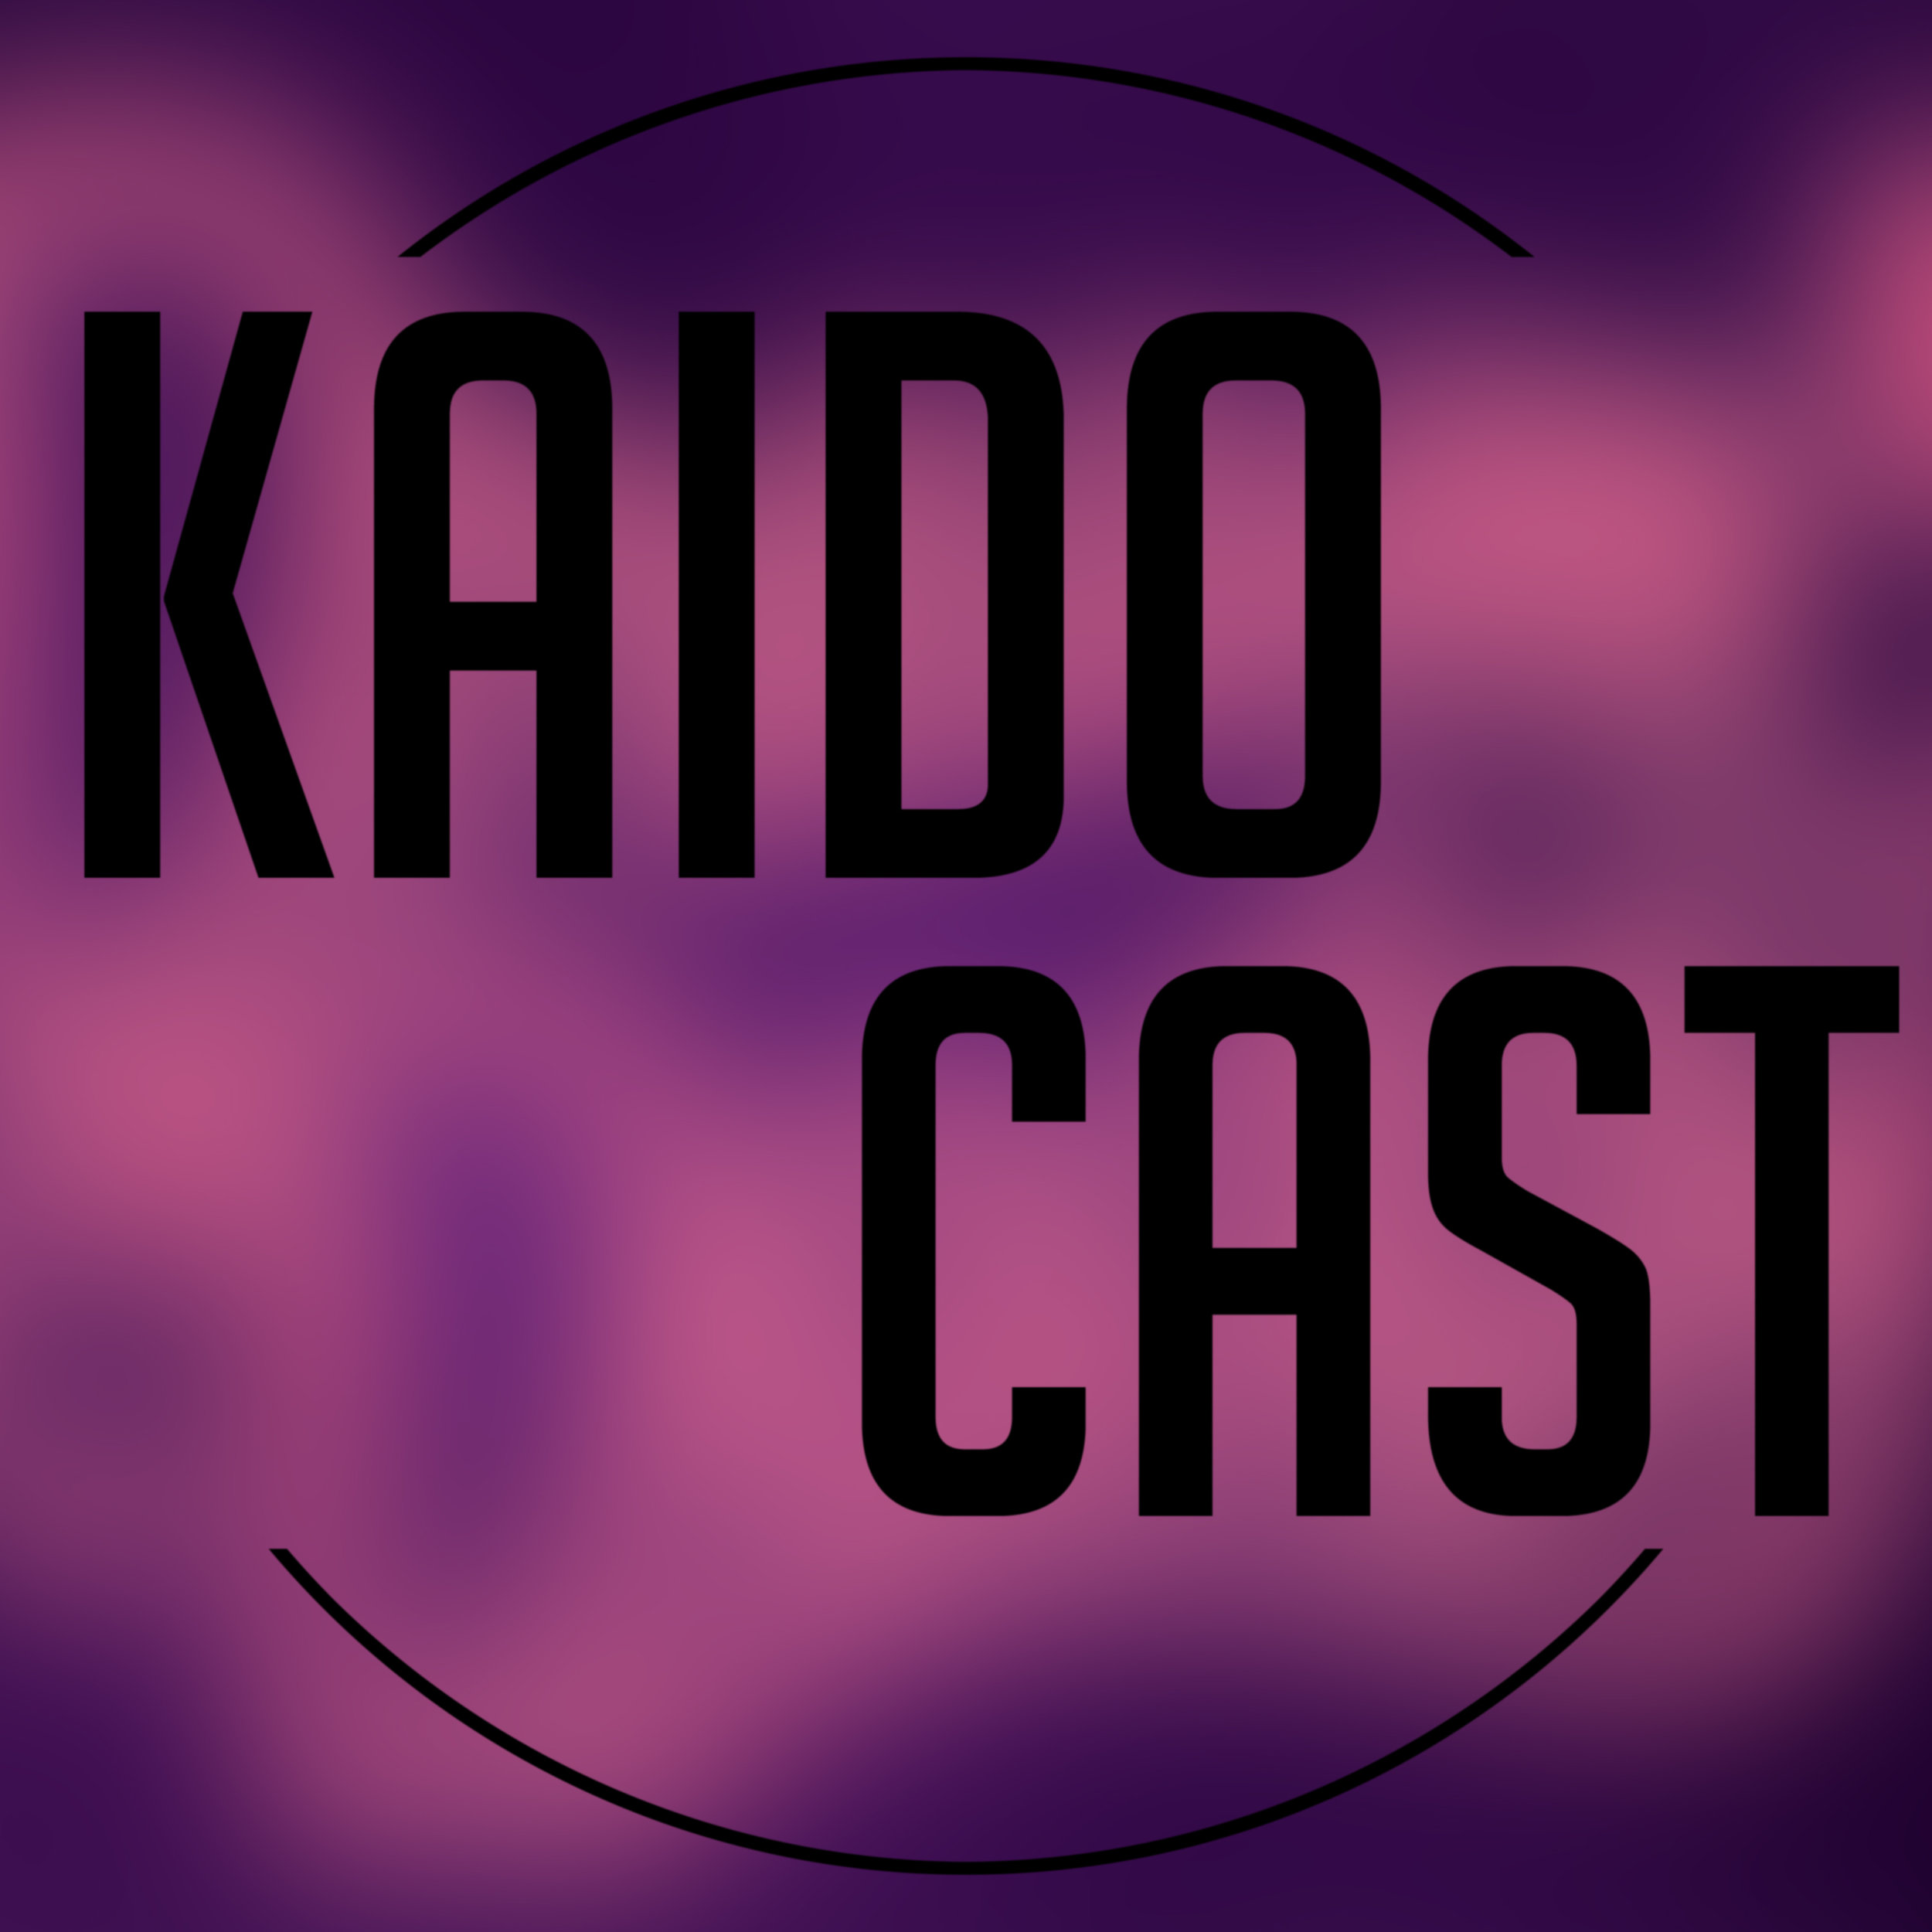 KAIDO Cast 07 - Dr. Chuck Tingle's AI Dream Daddy - This week we are visited by our new friend Rob and his good buddy Chuck, Andy is head over heels for some daddies, and Zac regrets the decisions he's made.